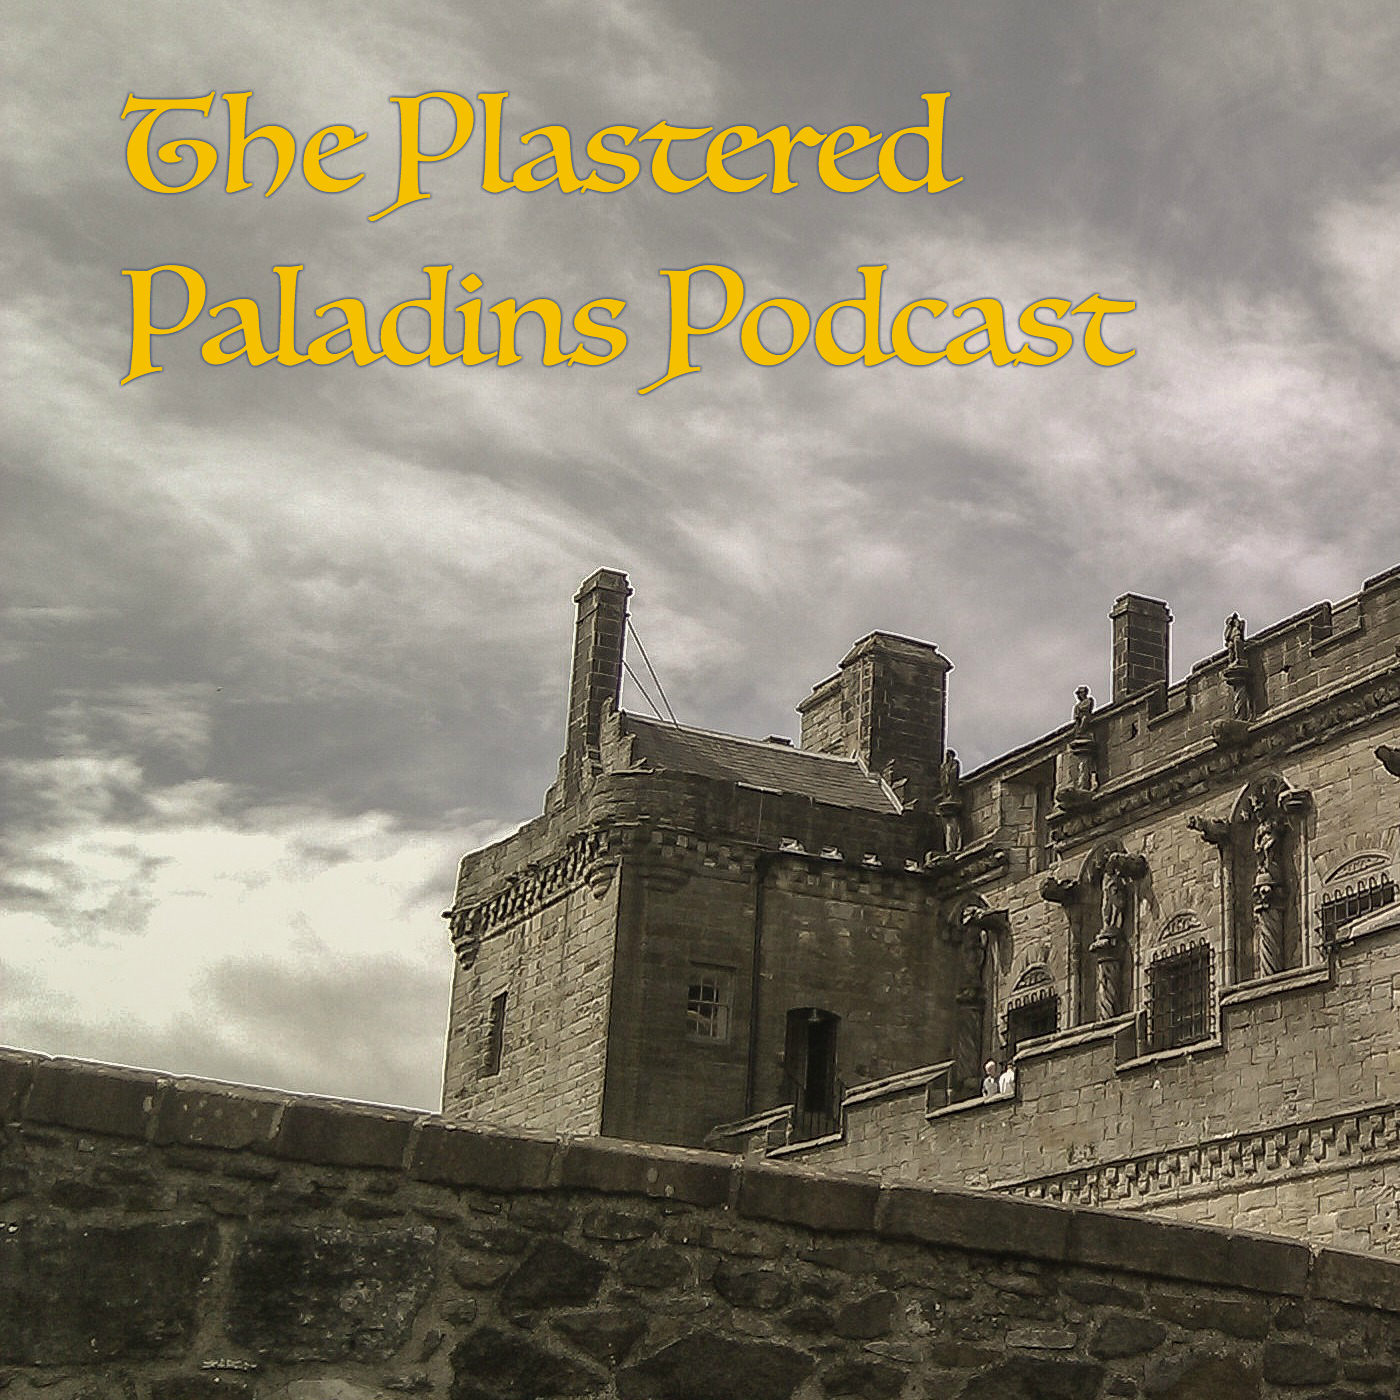 The Plastered Paladins: On Spooky Horror Films